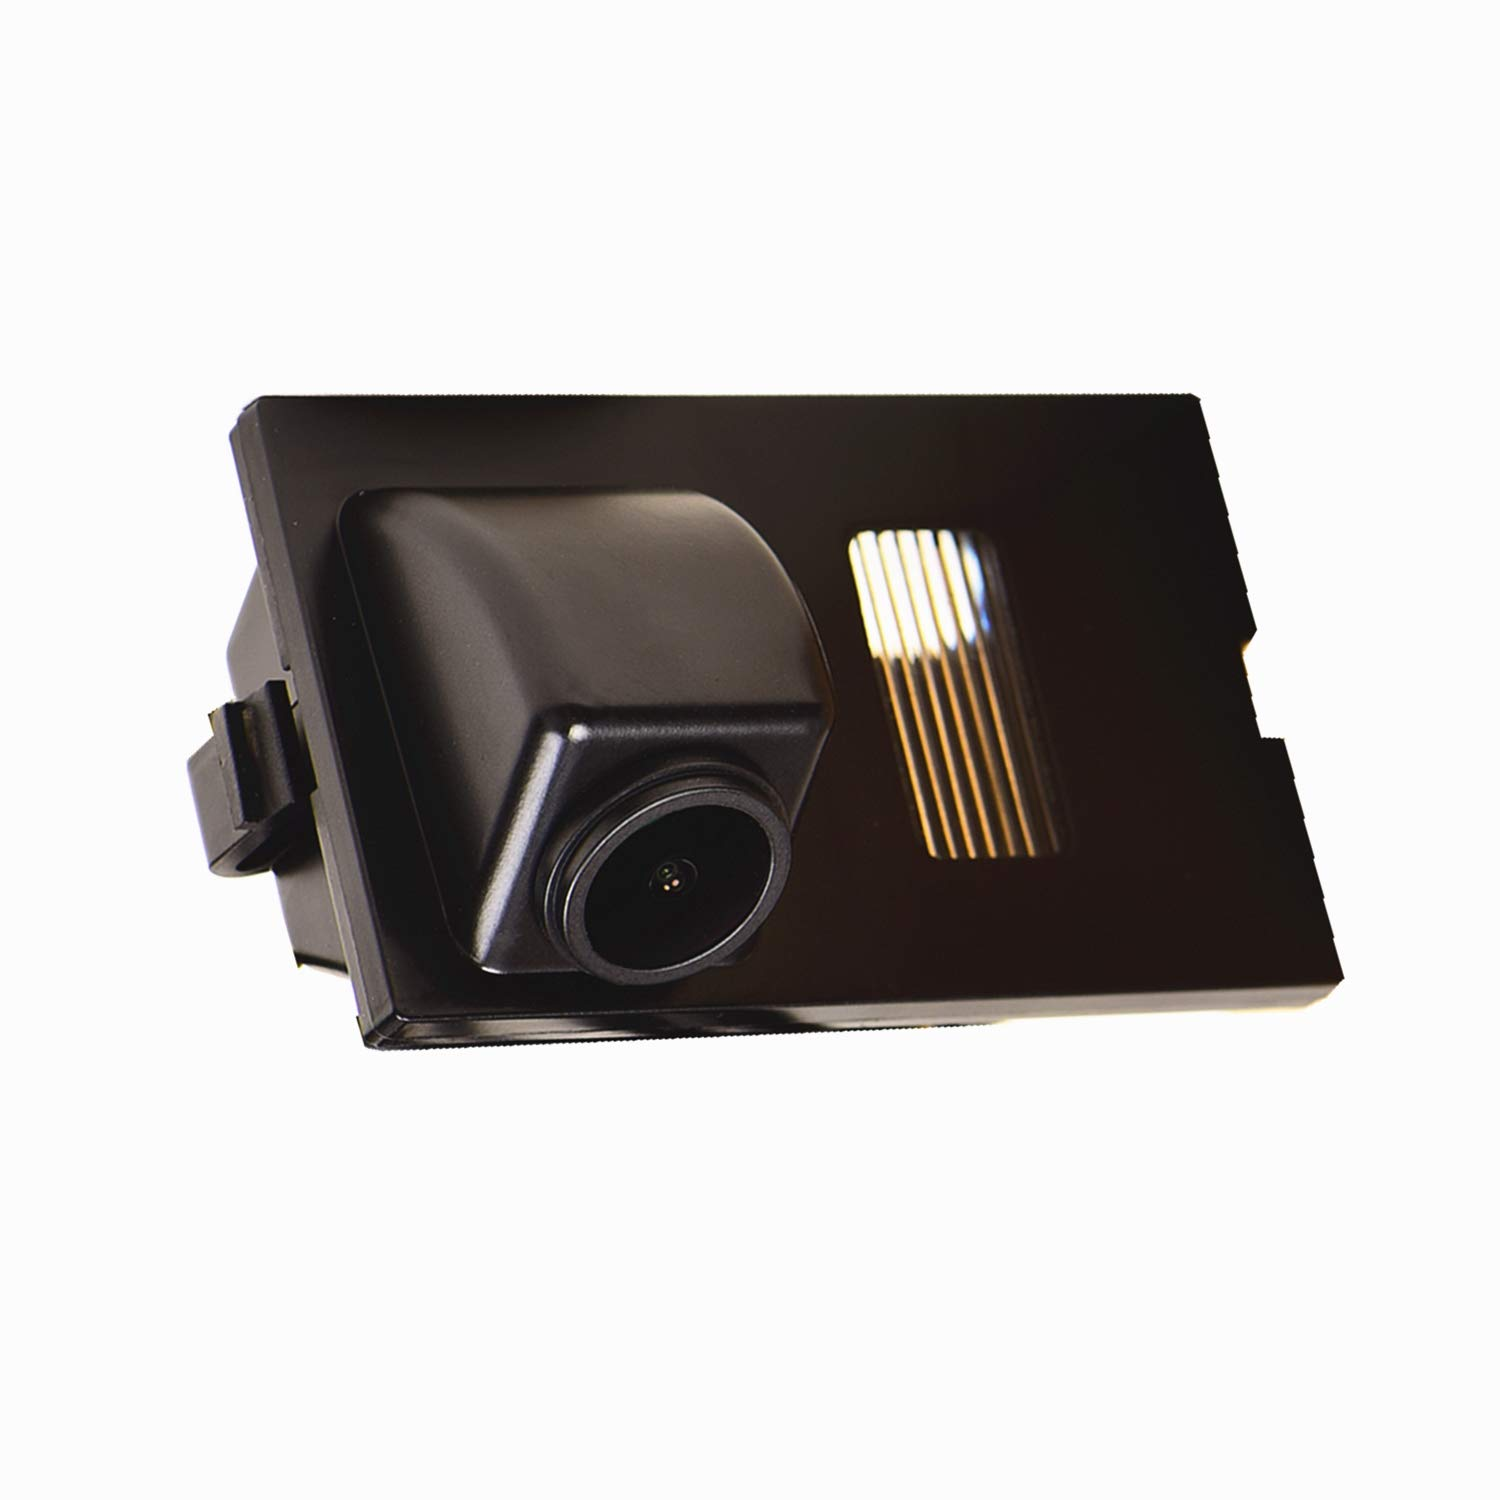 Reversing Camera Integrated in Number Plate Light License Rear View Backup Camera Waterproof Night Vision for Land Rover Freelander 2 Discovery 3 LR3 Discovery 4 LR4 Range Rover Misayaee